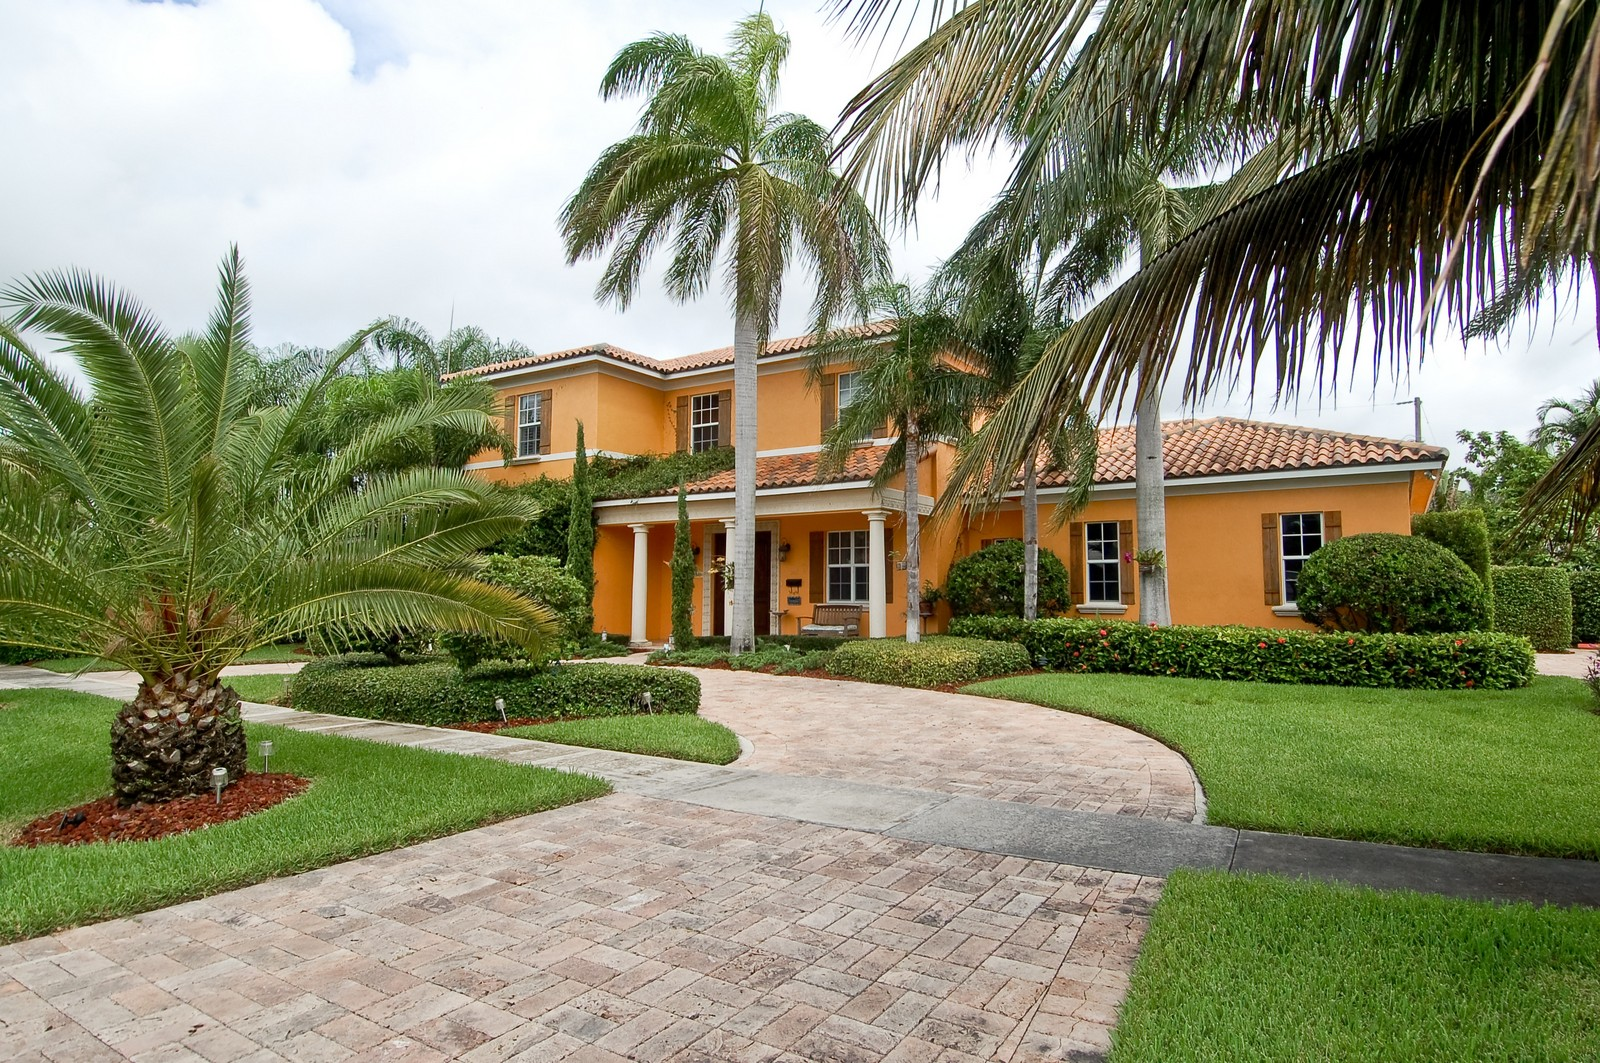 Real Estate Photography - 355 NE 3rd Ct, Boca Raton, FL, 33432 - Front View